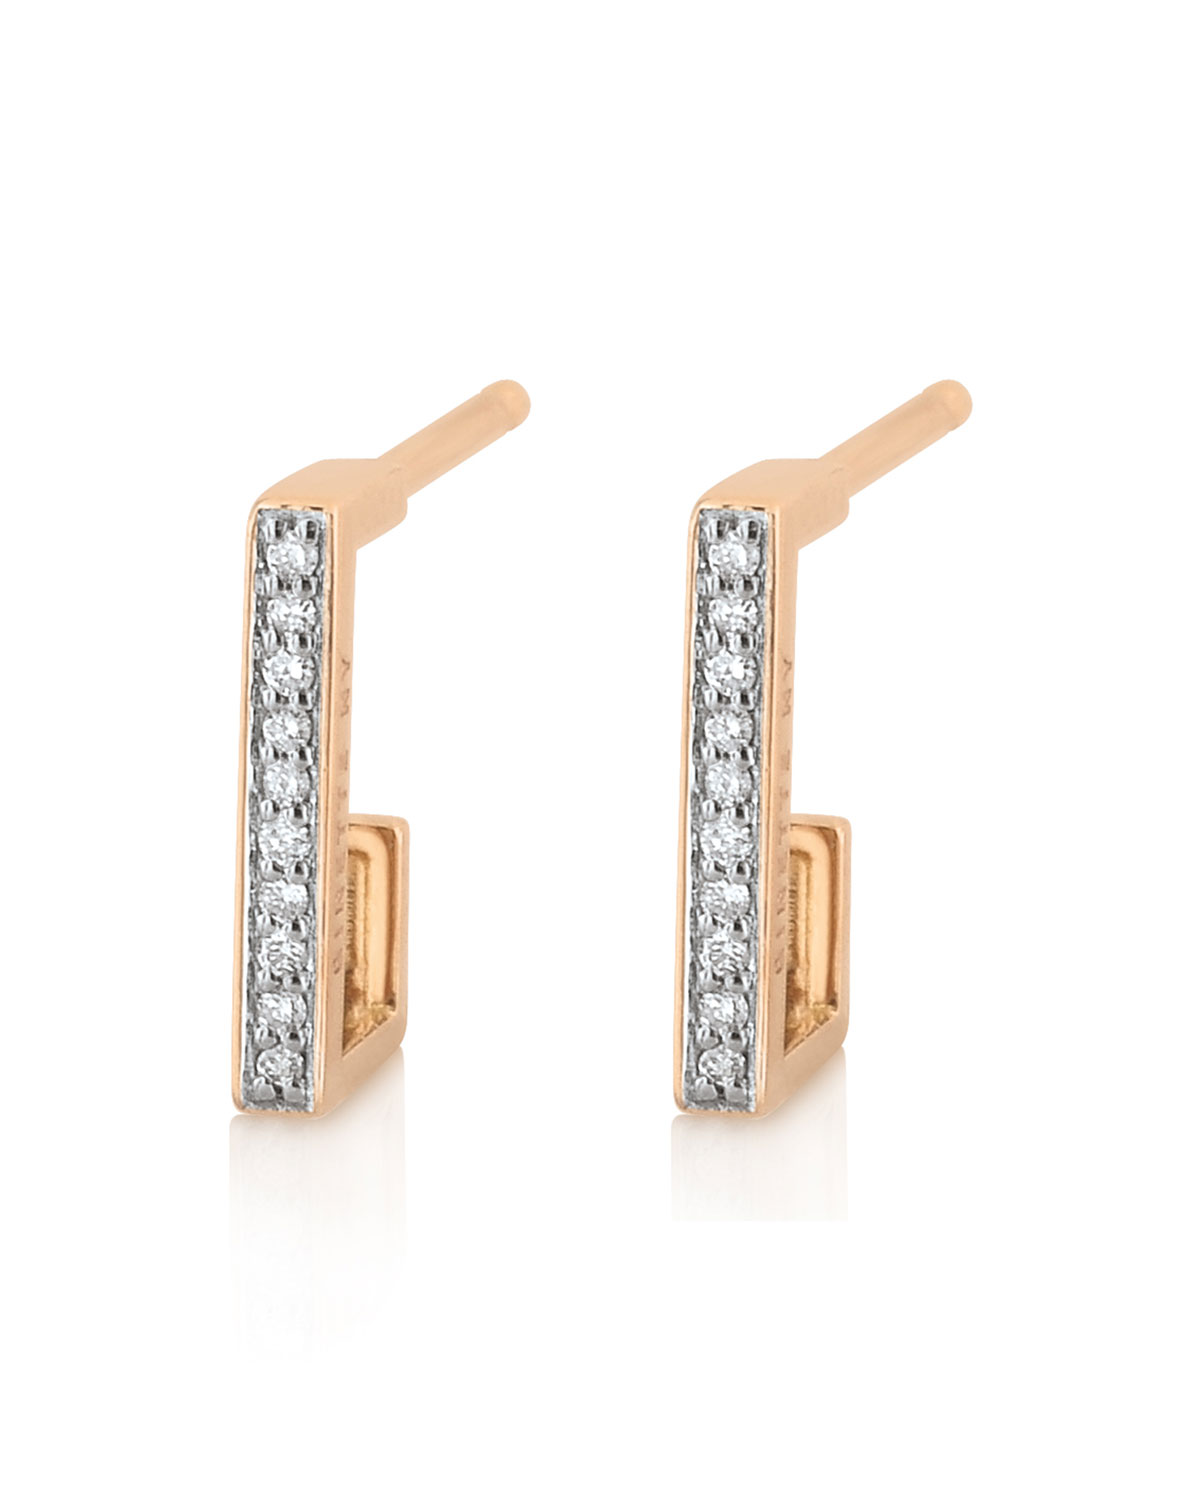 GINETTE NY 18k Rose Gold Diamond Art Deco Hoop Earrings